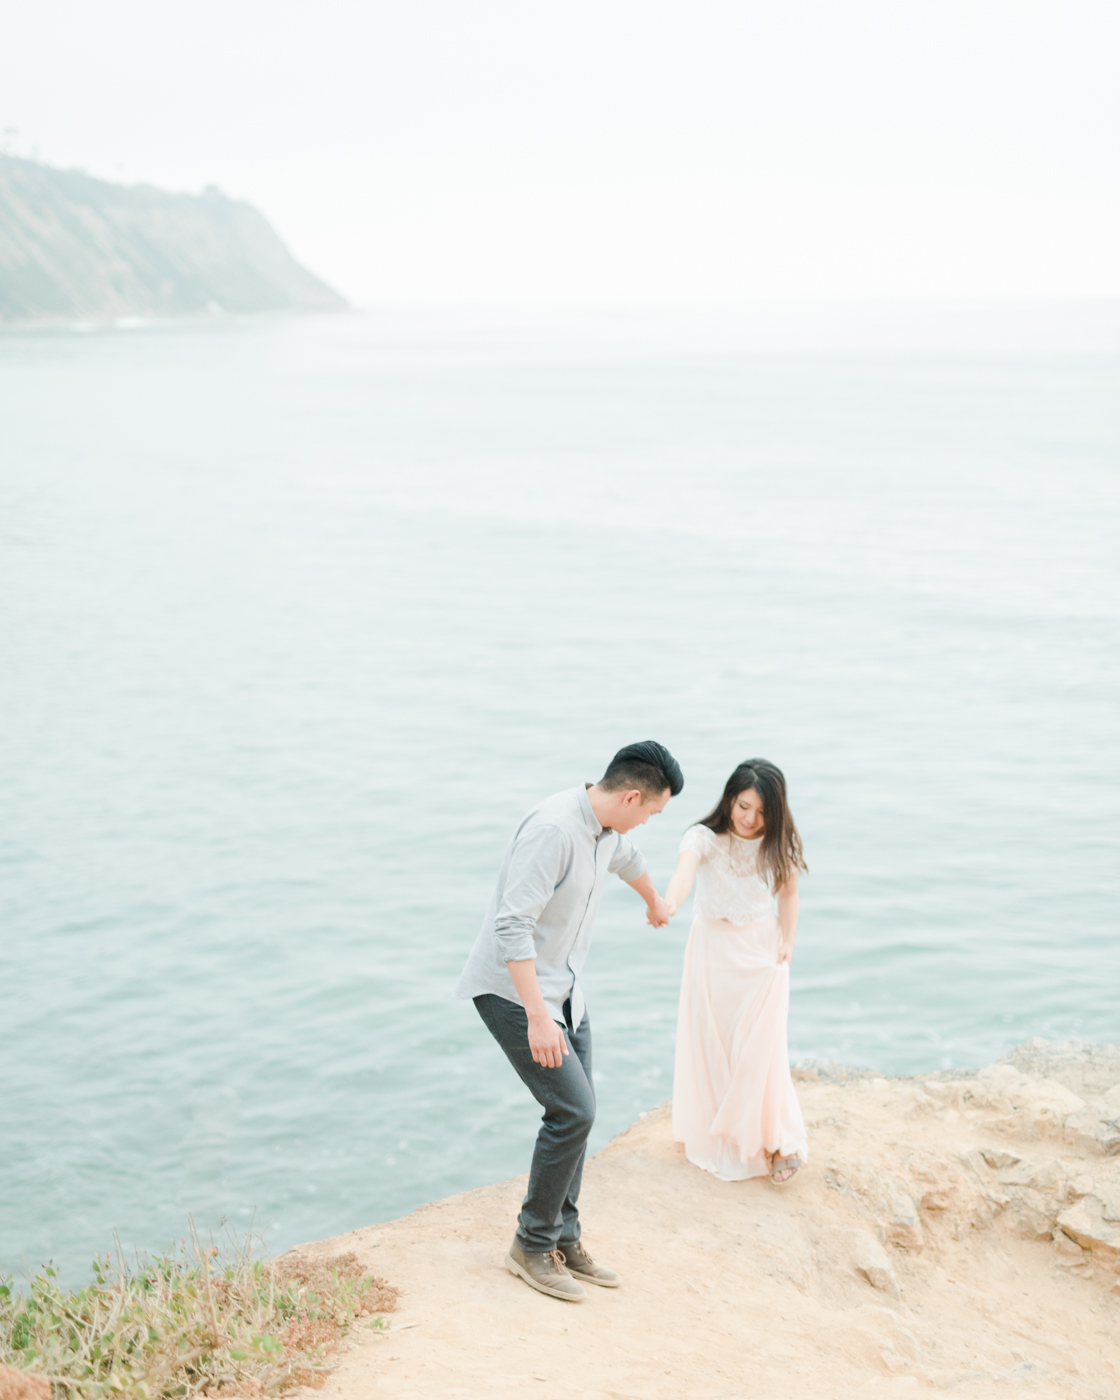 Palos_Verdes_Beach_Engagement_Session_Los_Angles_Fine_Art_Wedding_Photographer_20.jpg